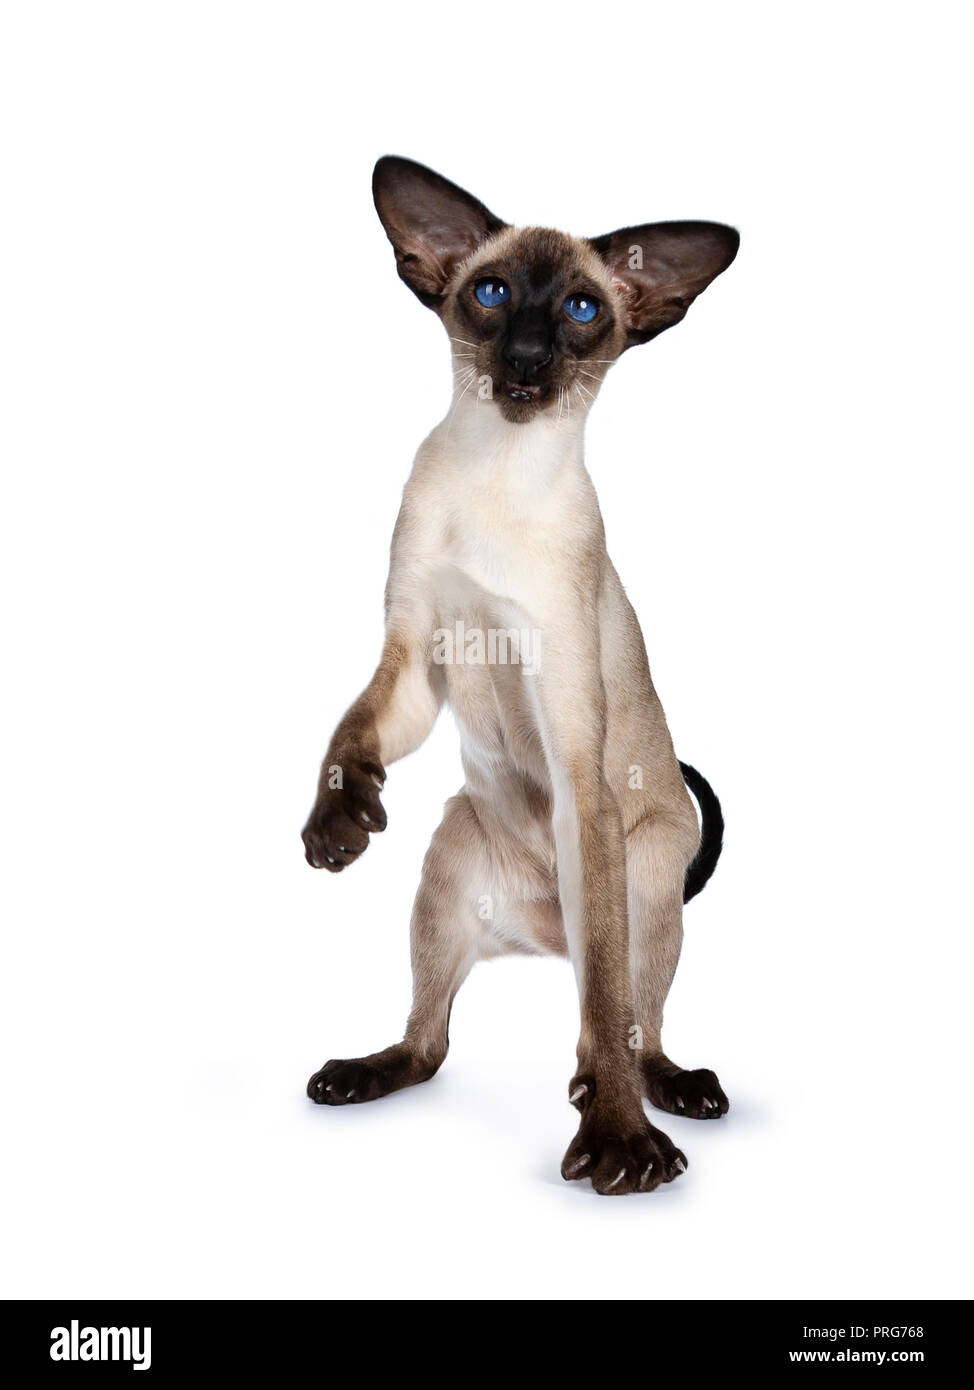 Excellent seal point Siamese cat kitten sitting / playing standing side ways / front view looking besidelense, isolated on white background and one pa - Stock Image